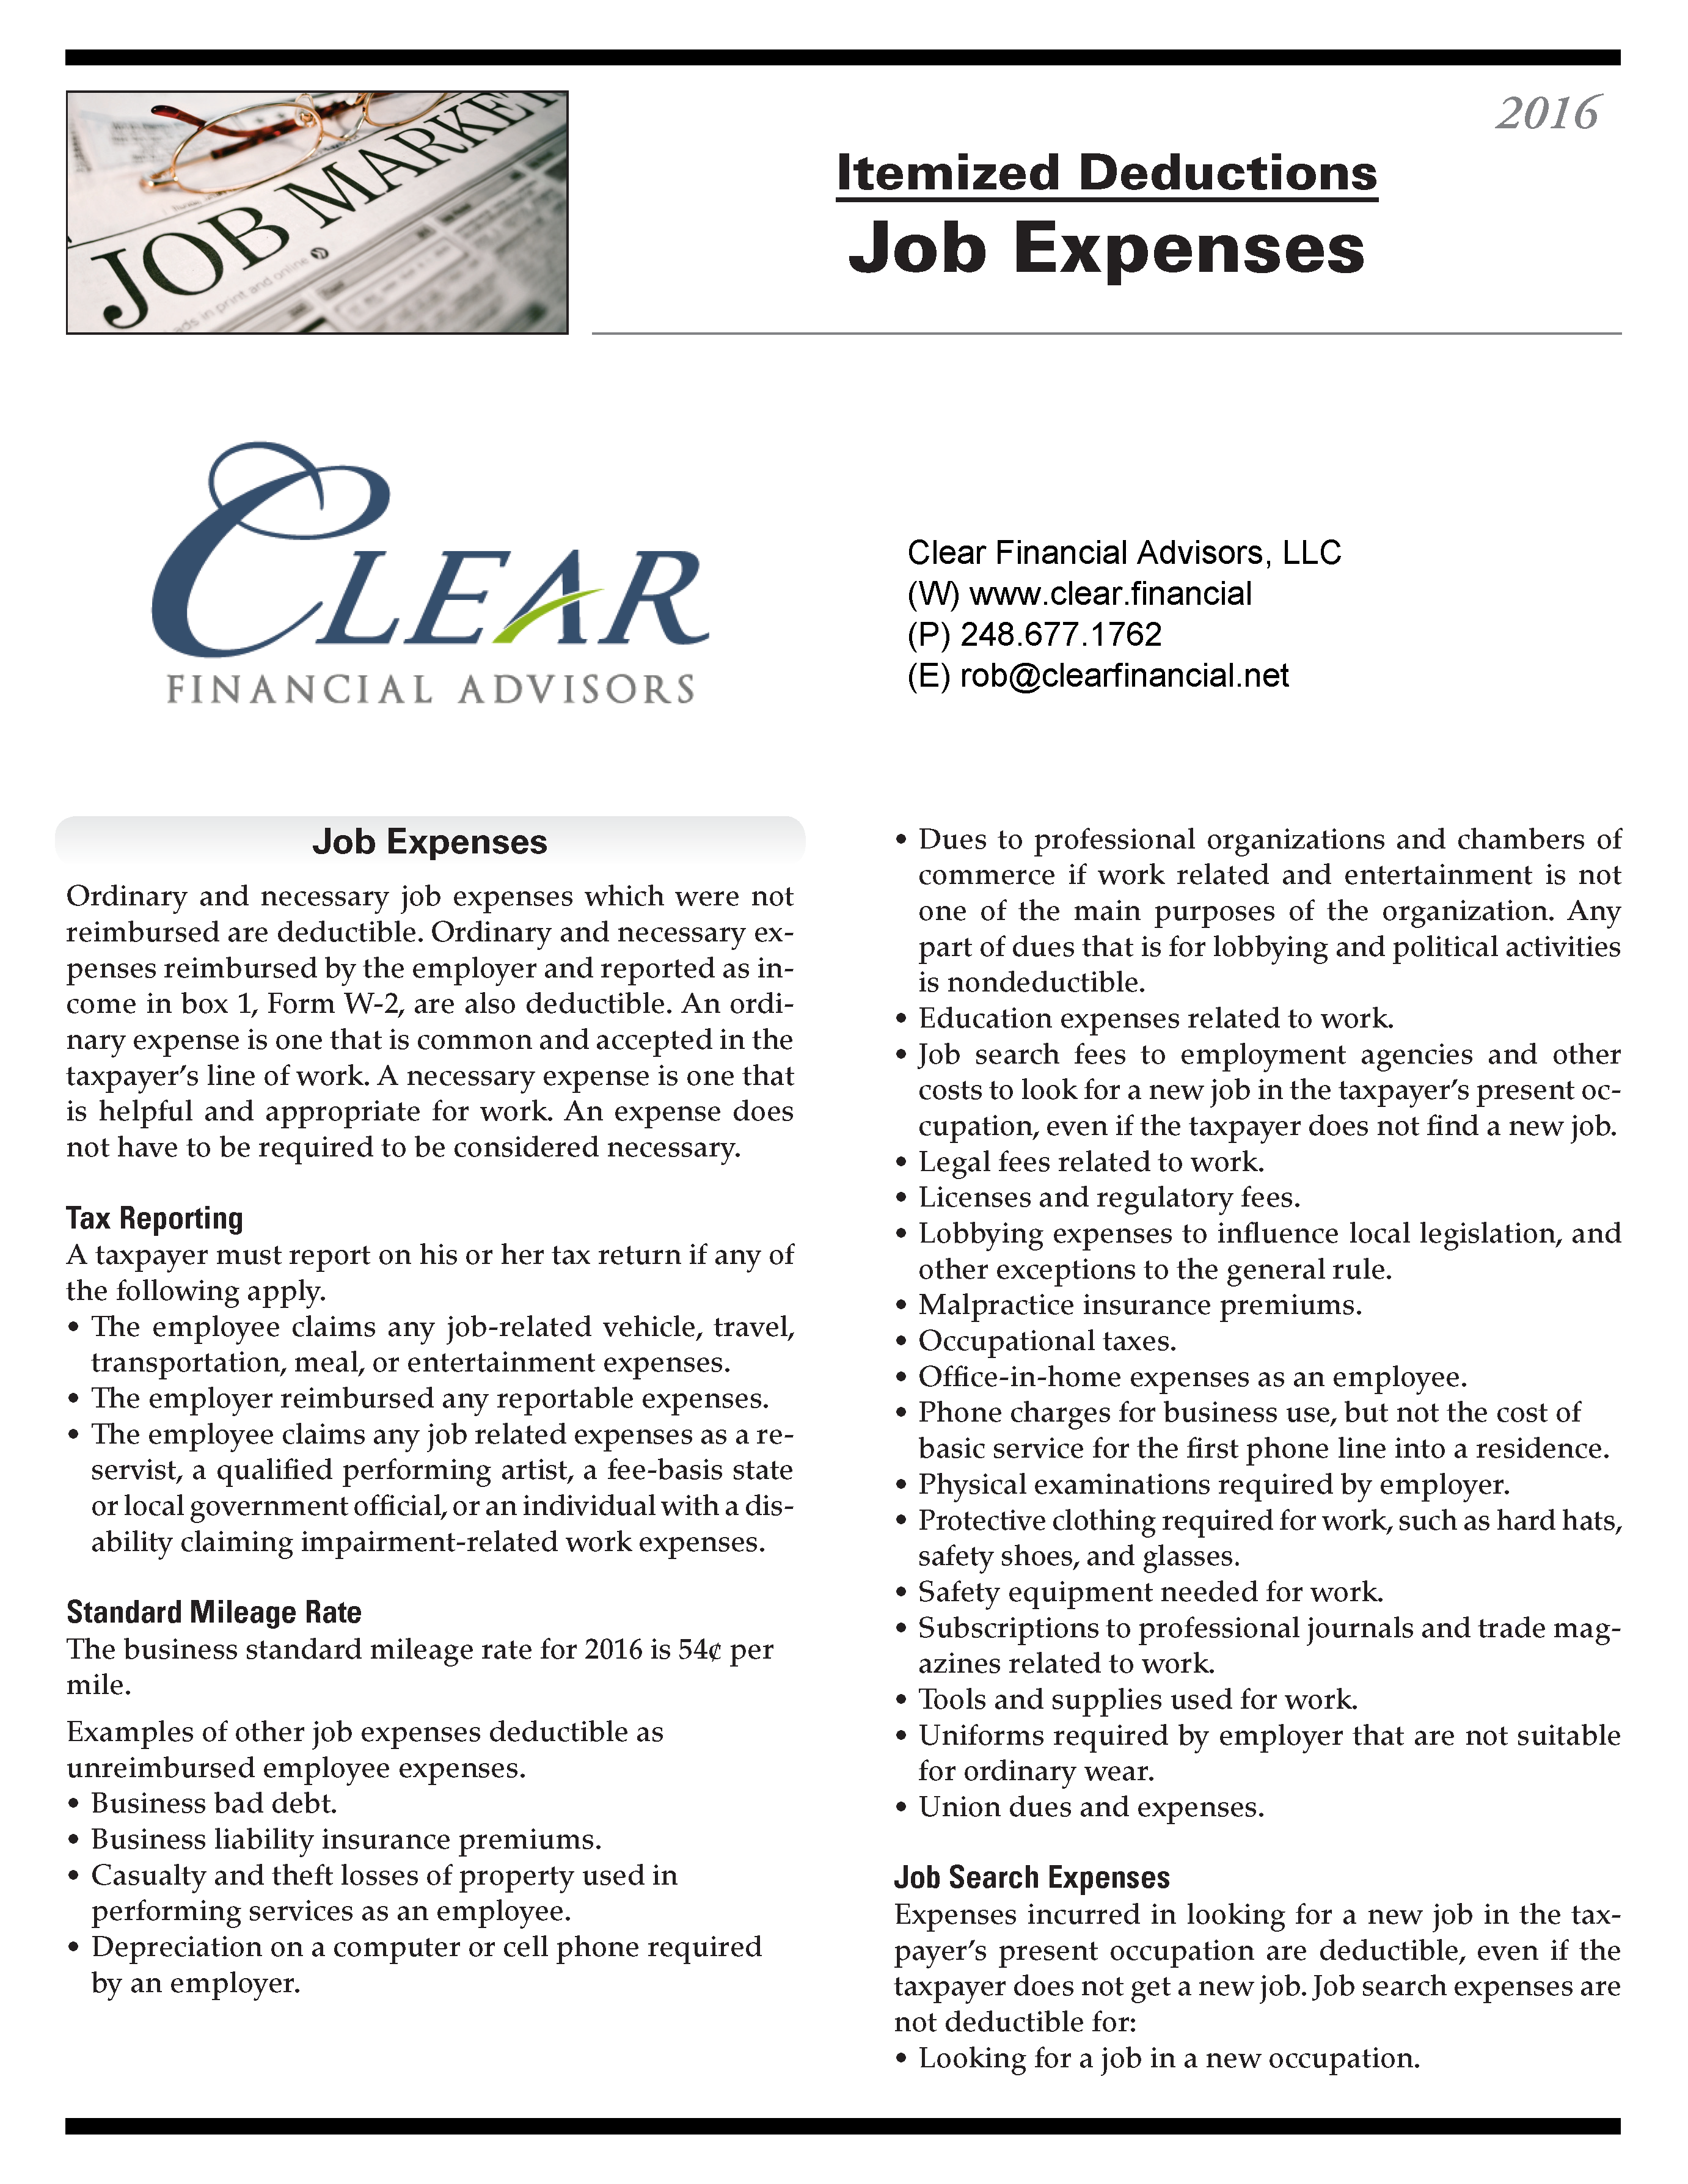 Itemized_Deductions_-_Job_Expenses_2016_Page_1